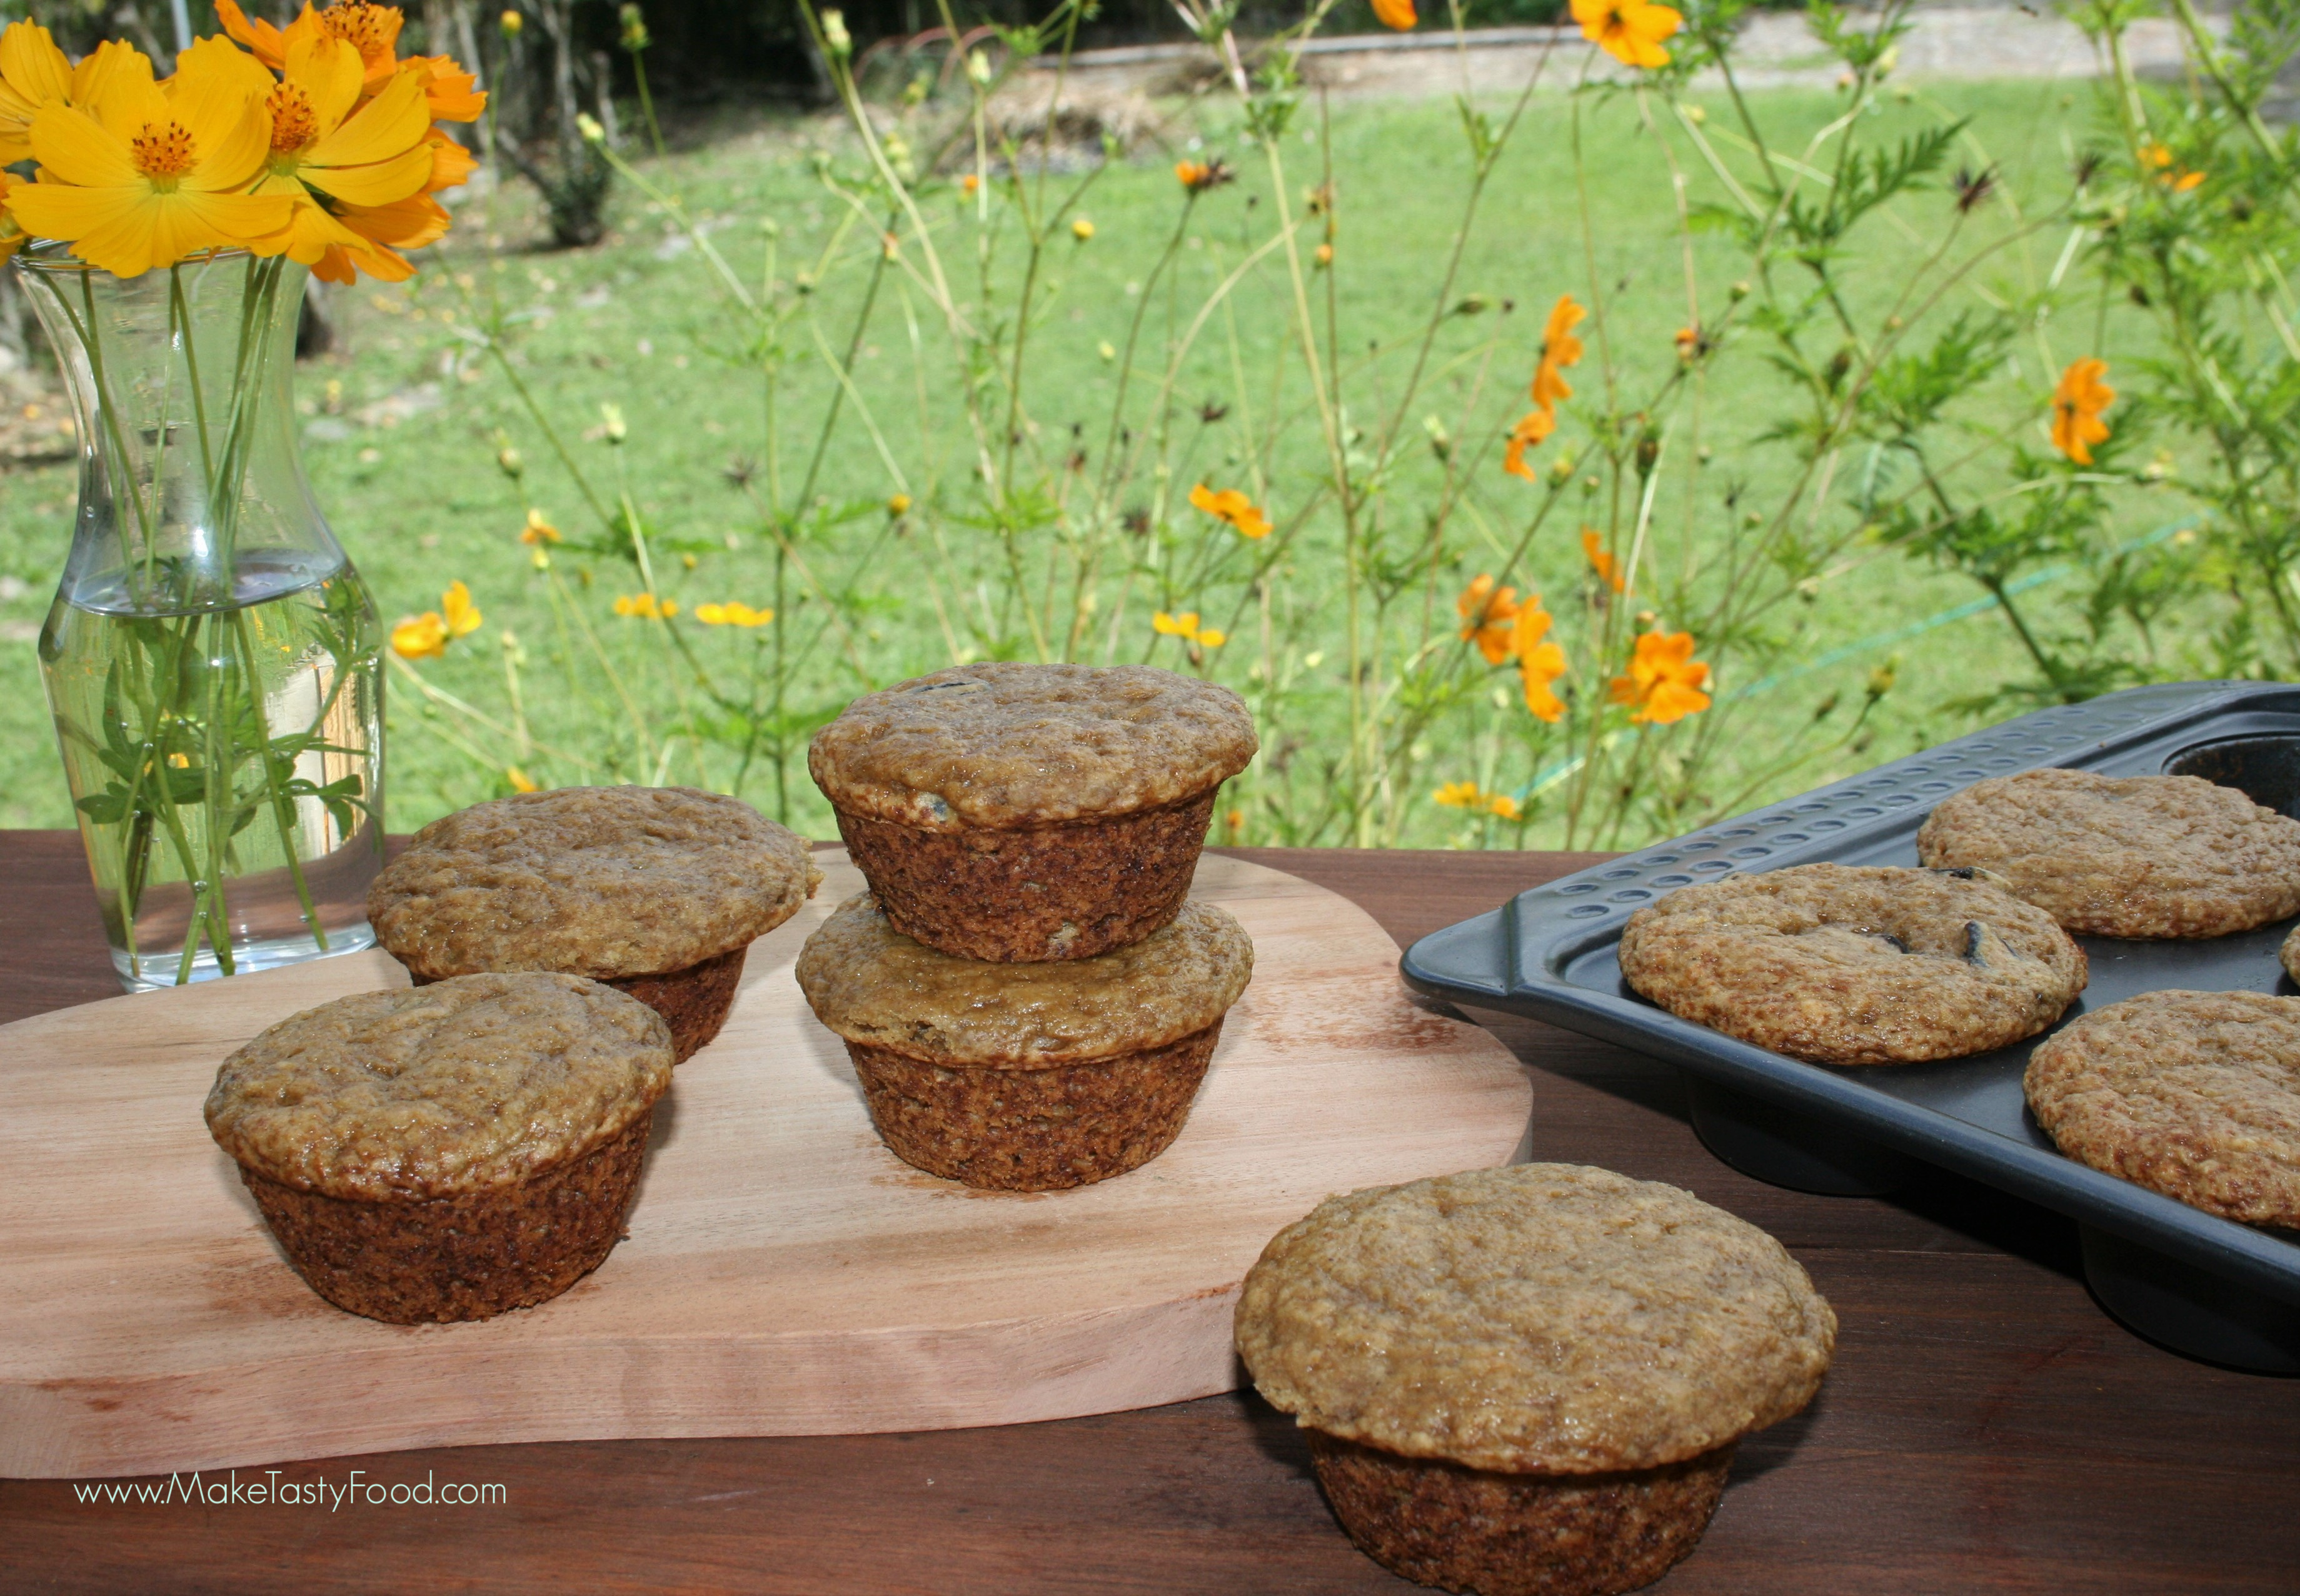 breakfast banana muffins just out of the oven